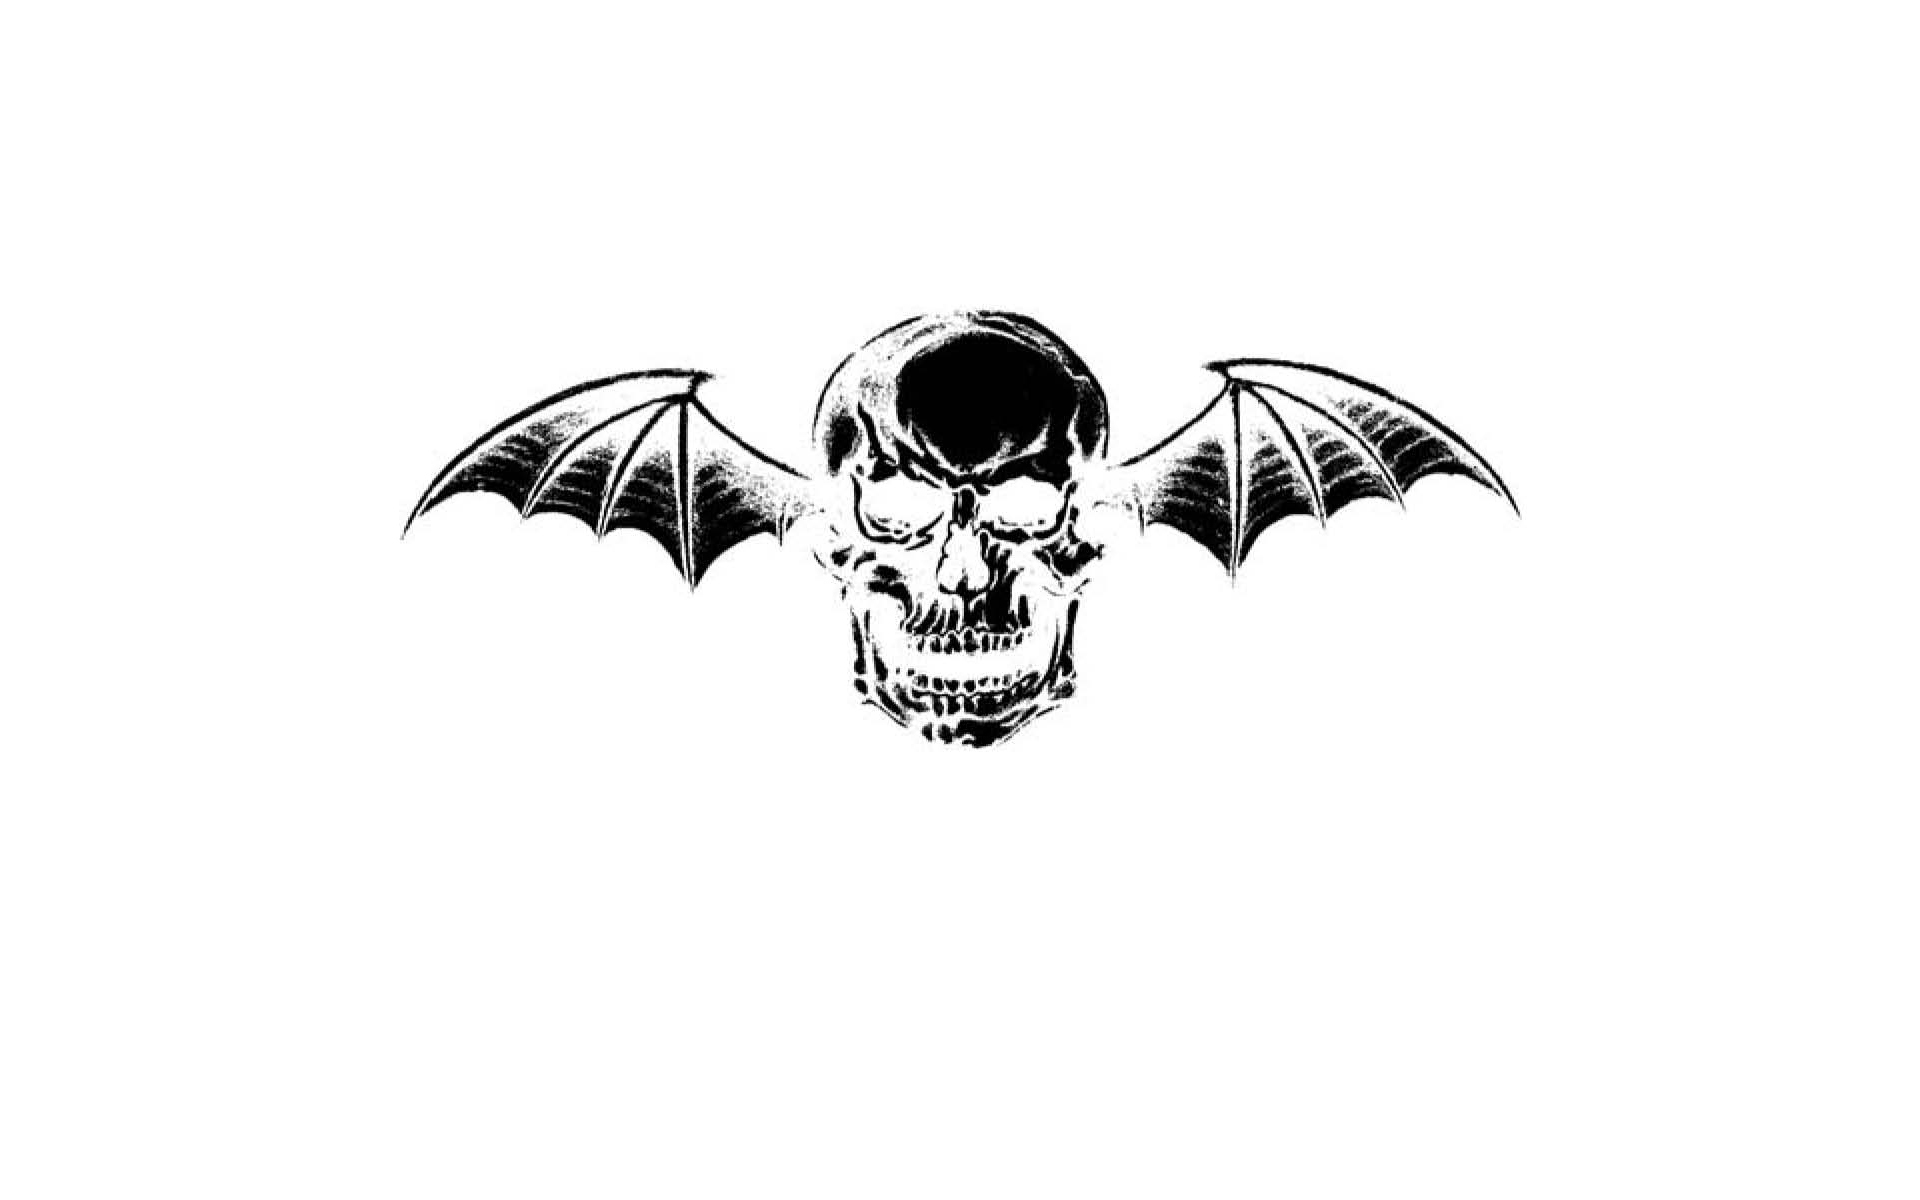 Avenged sevenfold deathbat by mckee91 scraps avenged sevenfold new 1920x1200